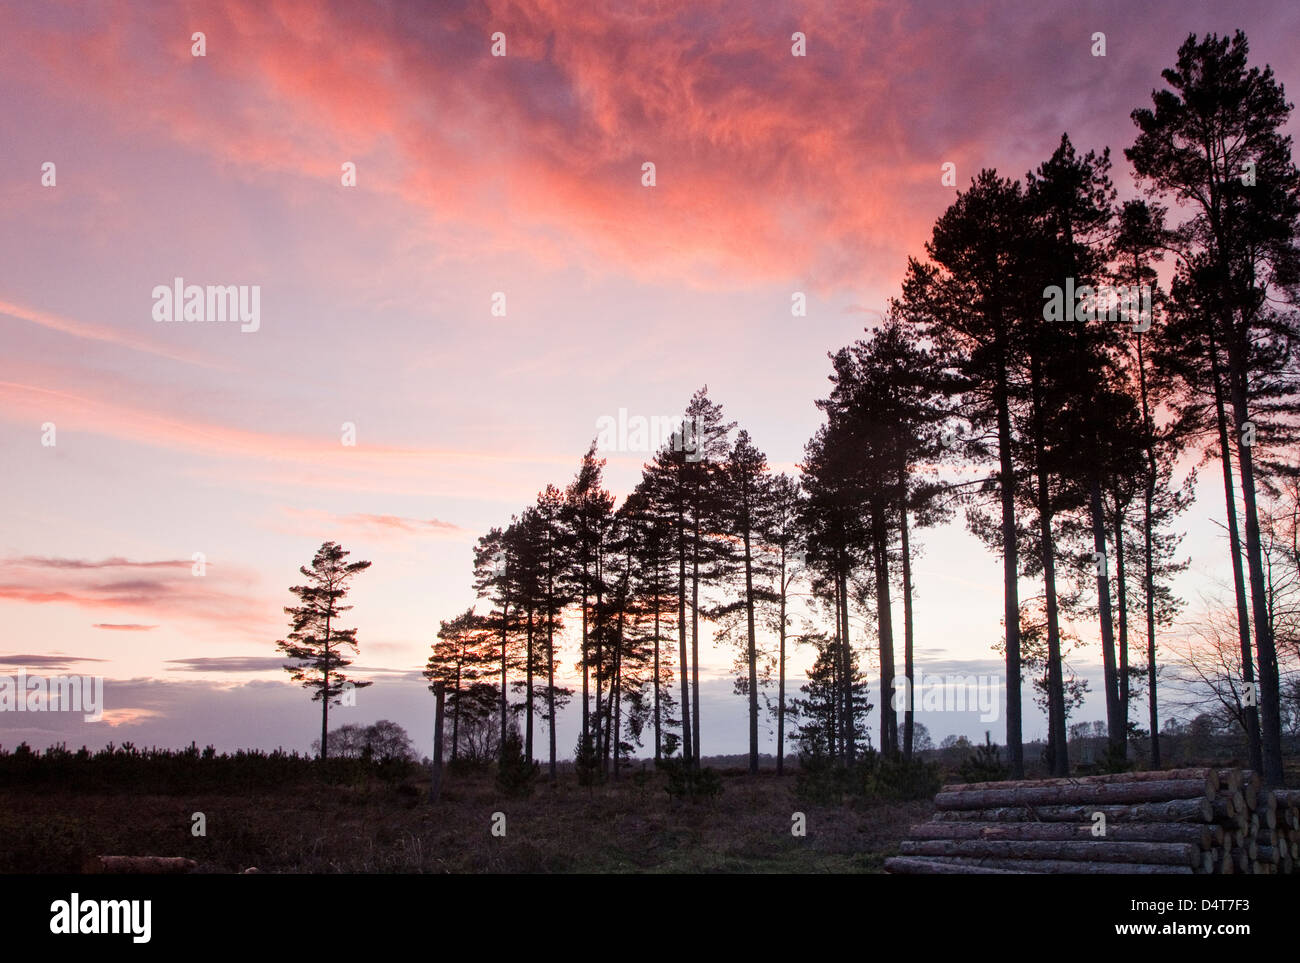 Twighlight ou au crépuscule sur Cannock Chase Salon de beauté naturelle exceptionnelle au printemps Staffordshire Photo Stock